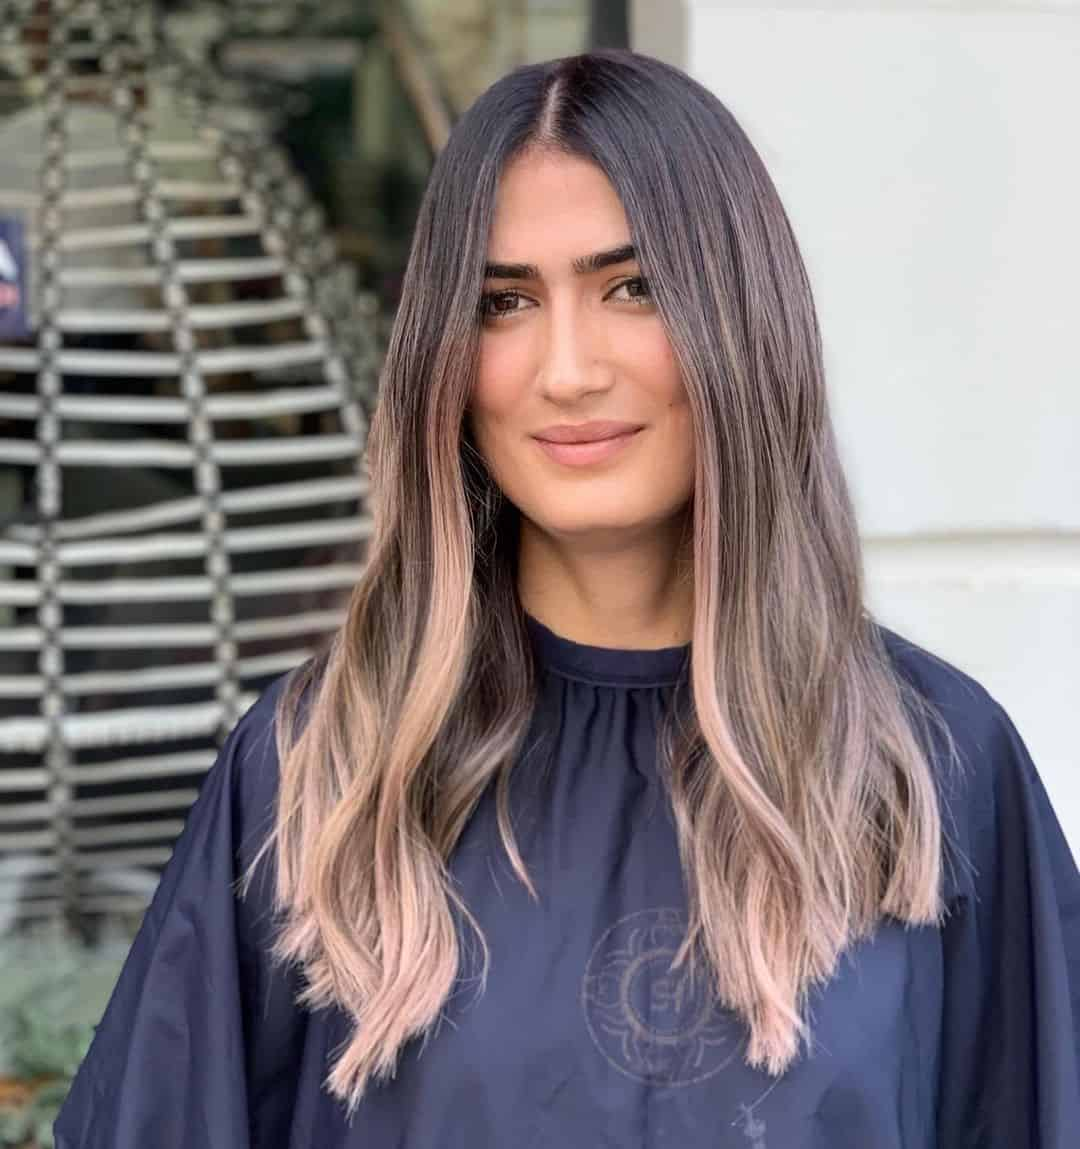 Wavy & Cute Balayage Hair For A Round Face